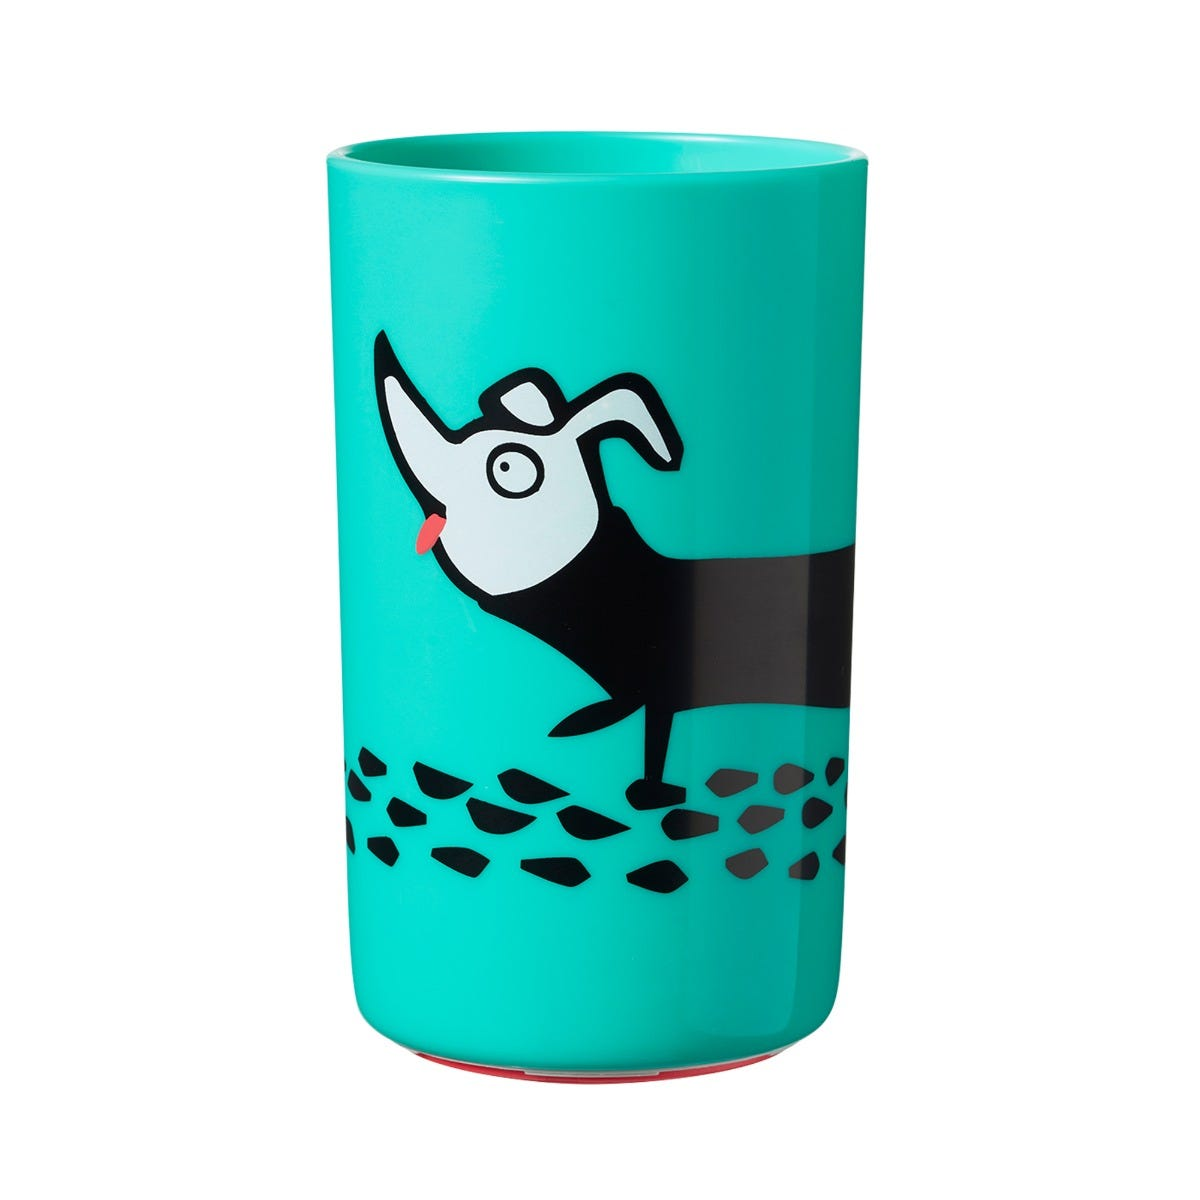 green-dog-no-knock-cup